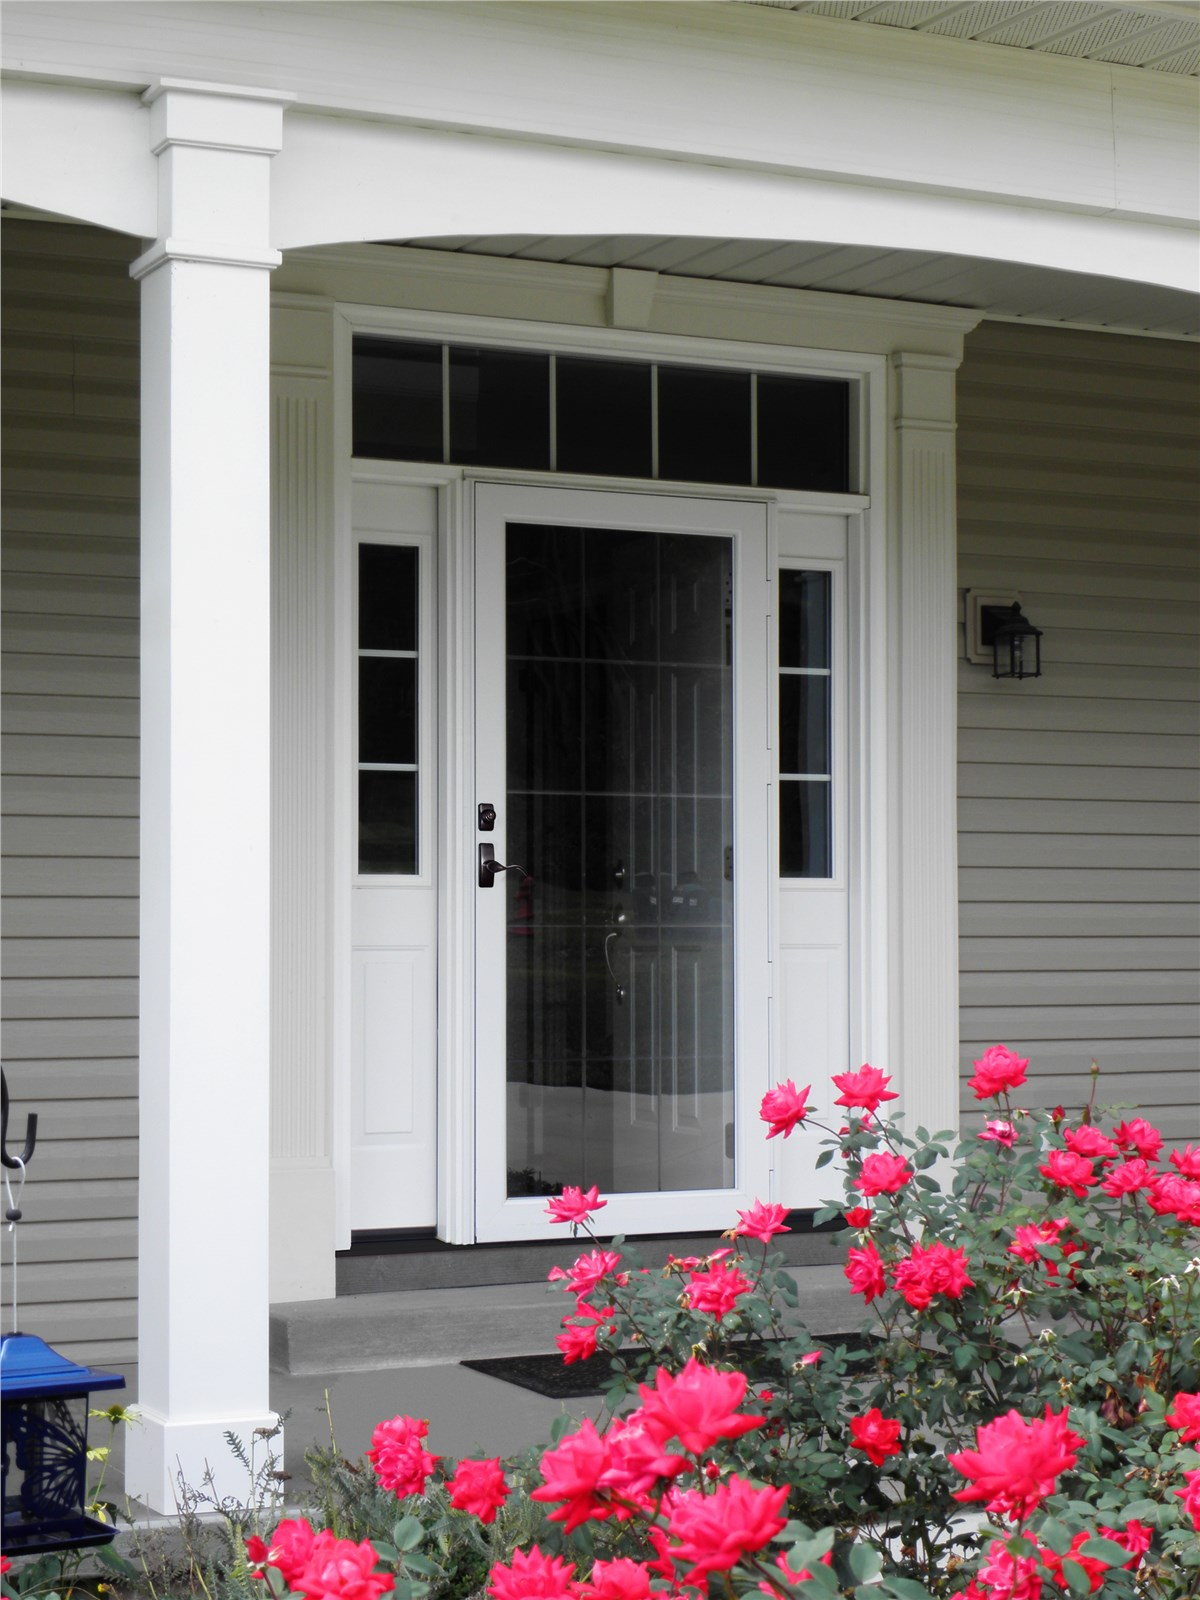 Colorado Storm Doors Co Storm Doors Bordner